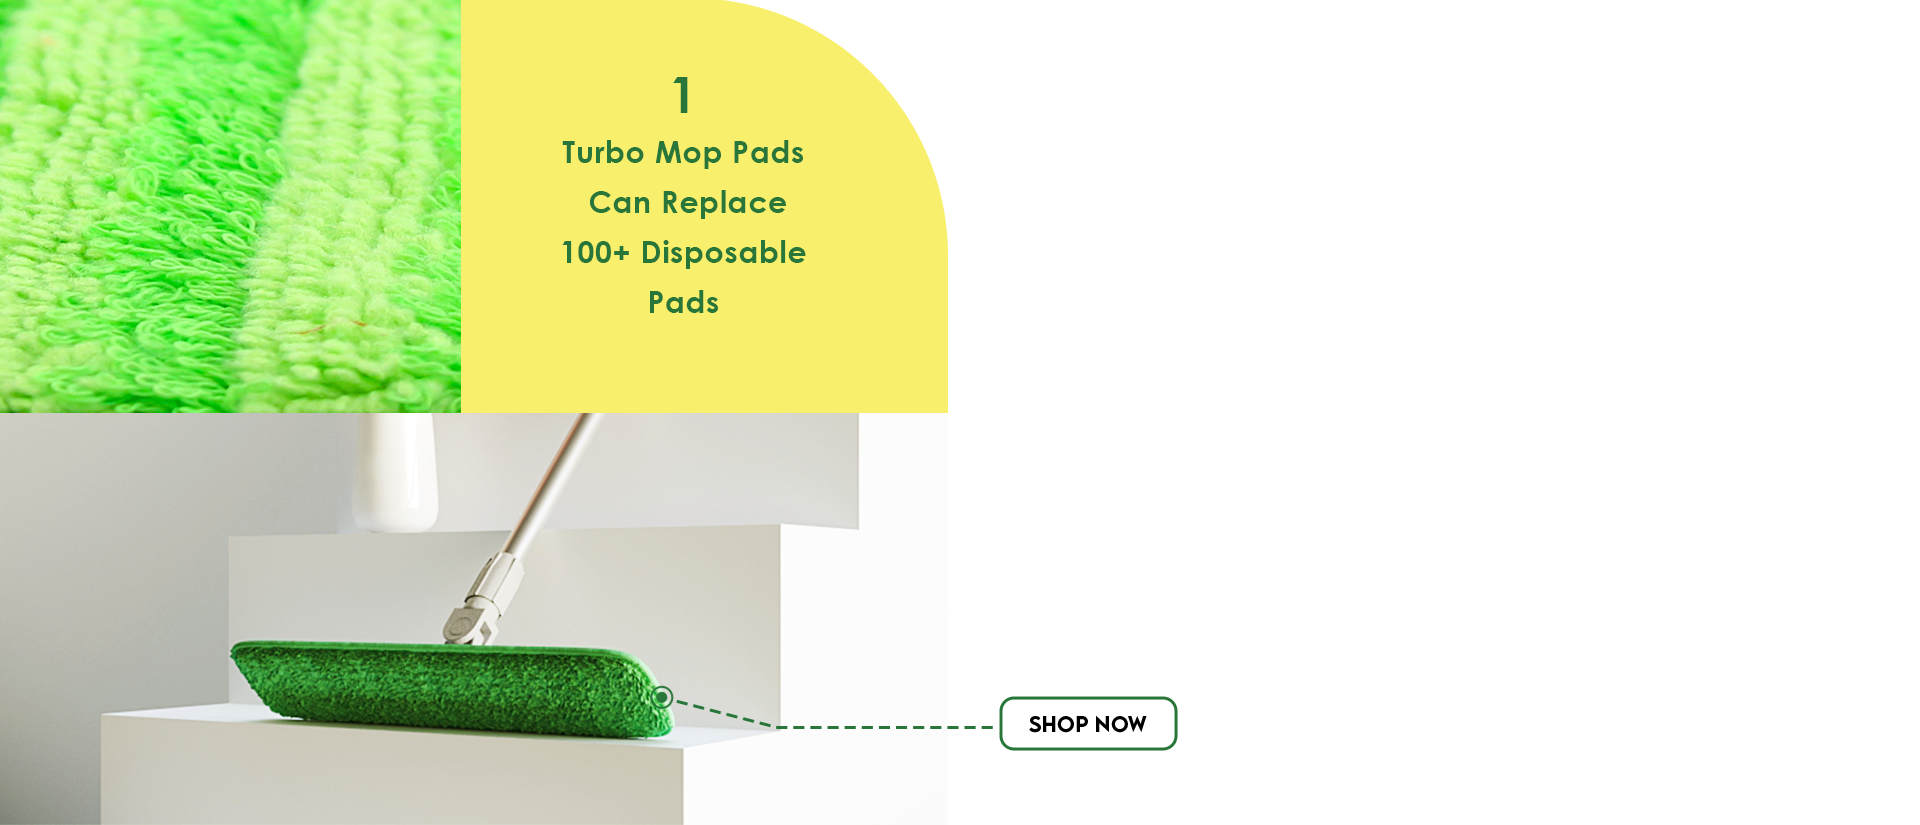 Turbo mop with washable pads are thick & highly absorbent